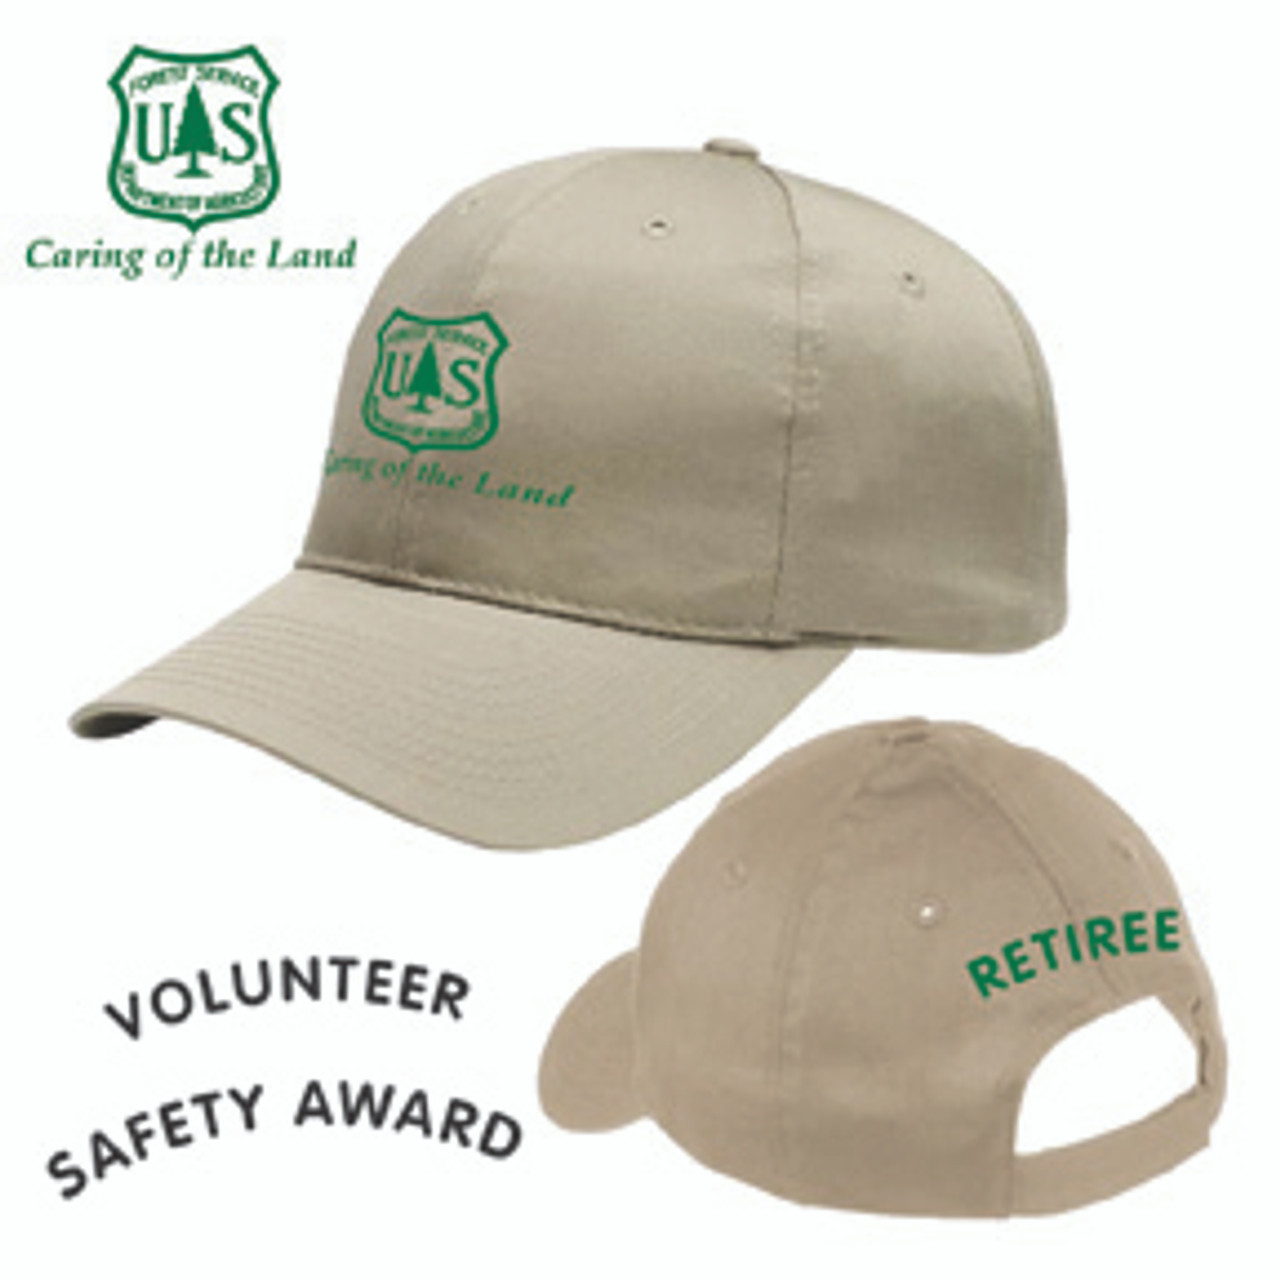 Forest Service Cap - Khaki with Embroidery on Back